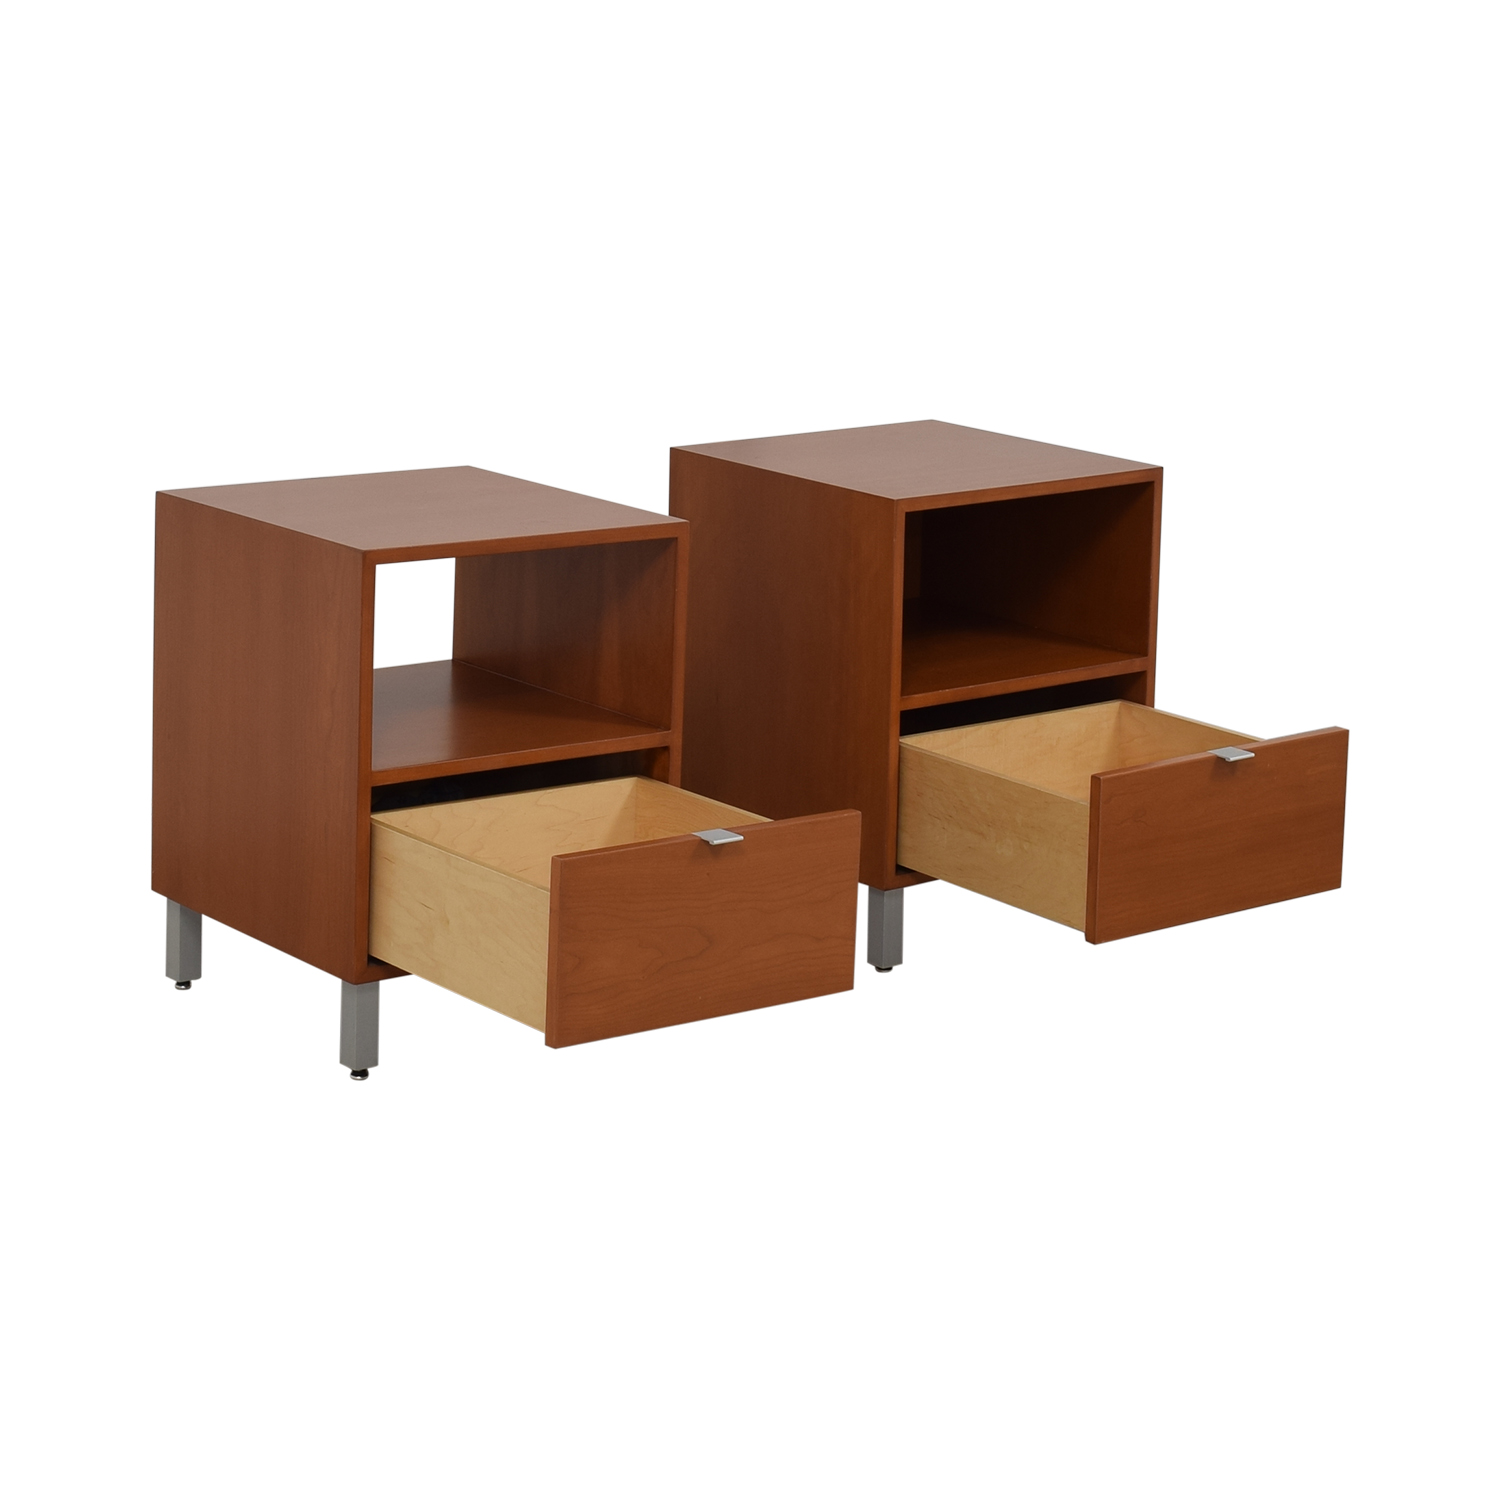 shop Urbangreen Furniture Urbangreen Furniture End Tables online